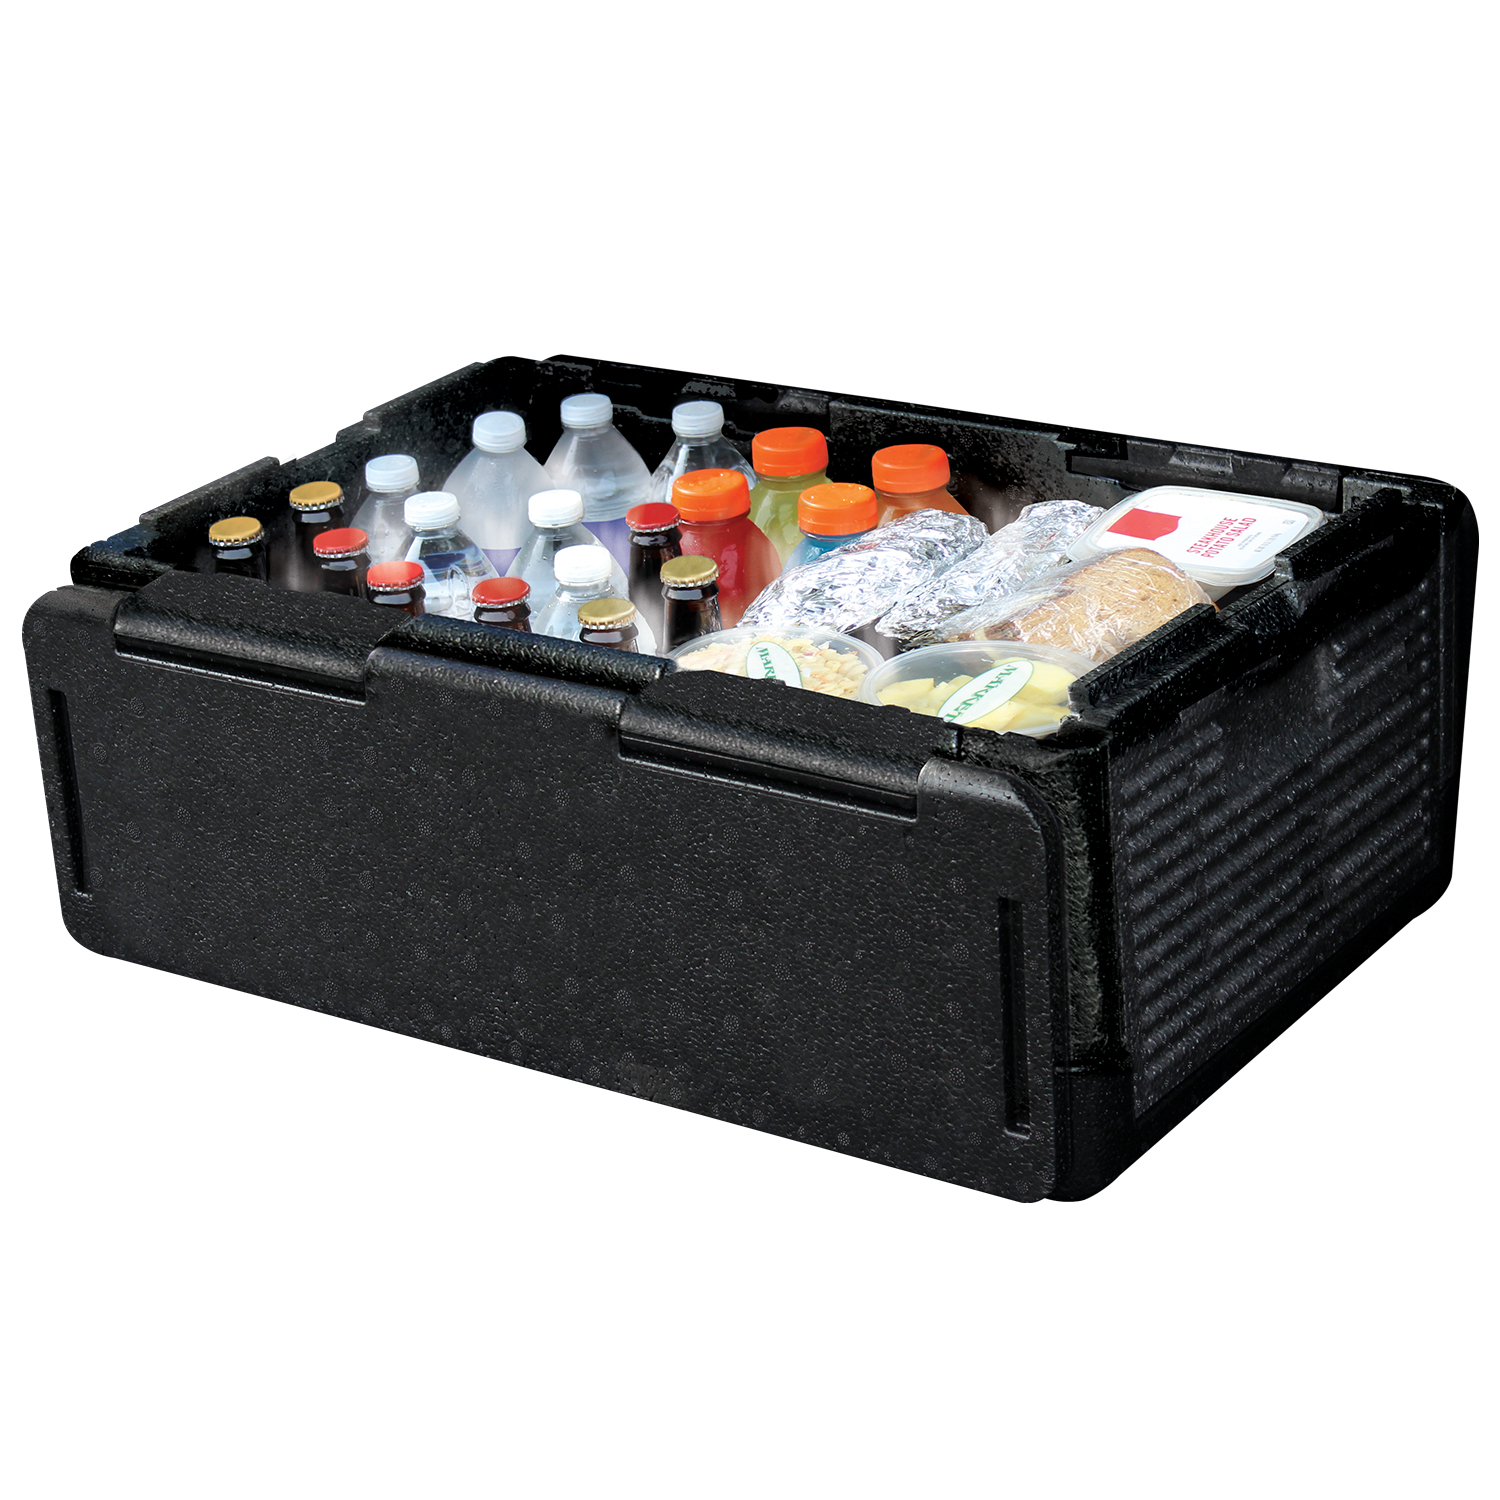 Chill Chest Lightweight And Foldable Ice Less Cooler As Seen On Tv Gamis Onthel Series